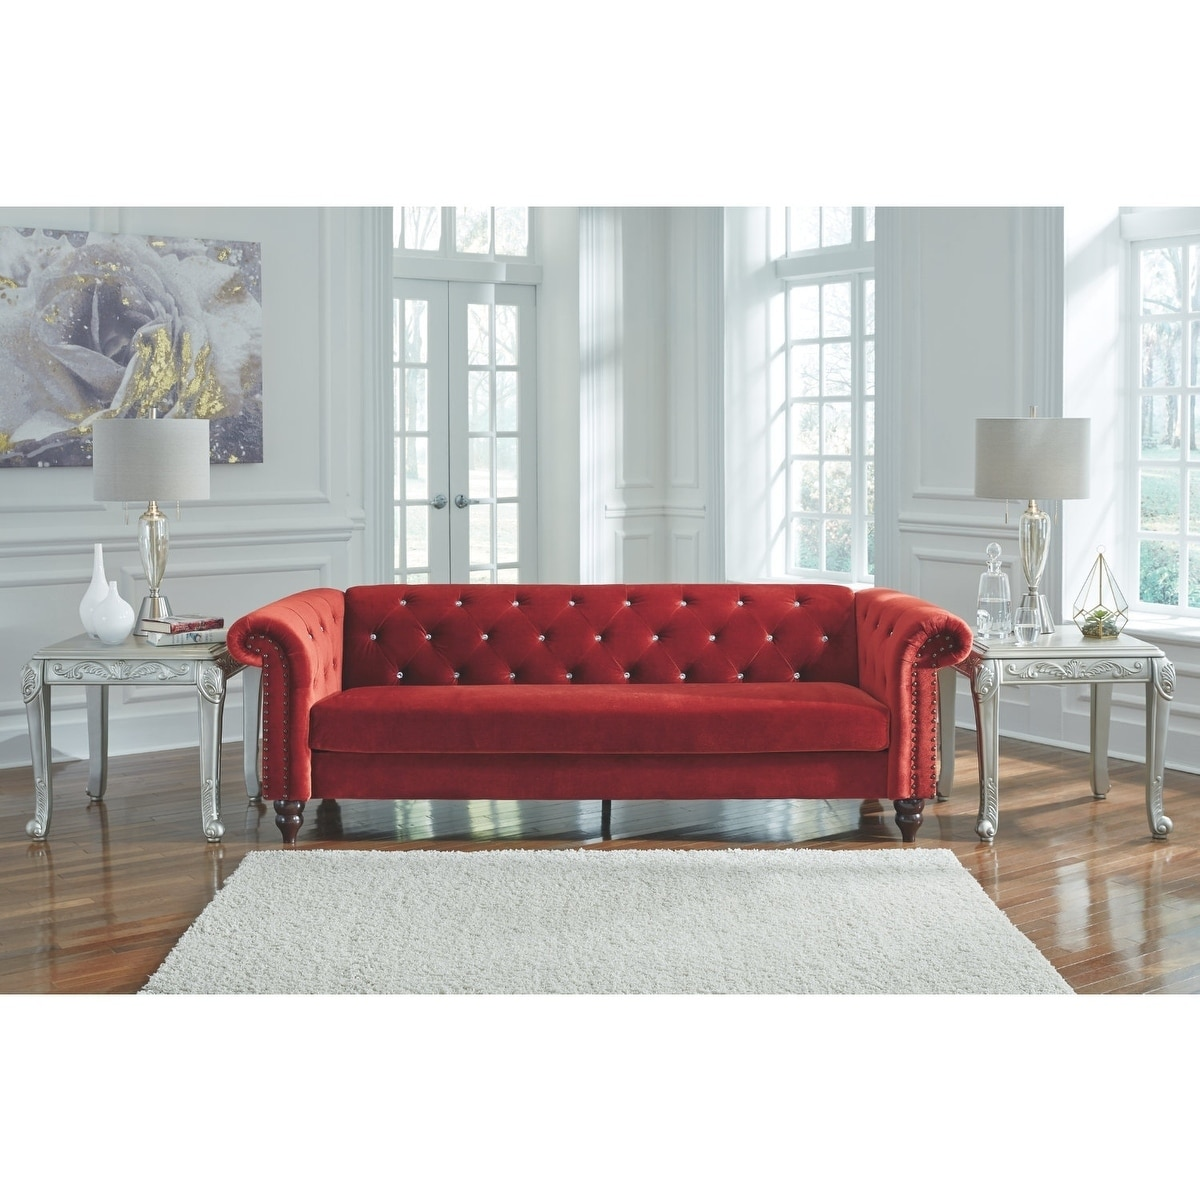 Klassische Sofas You Can Assemble Signature Design By Ashley Malchin Red Contemporary Ready To Assemble Sofa